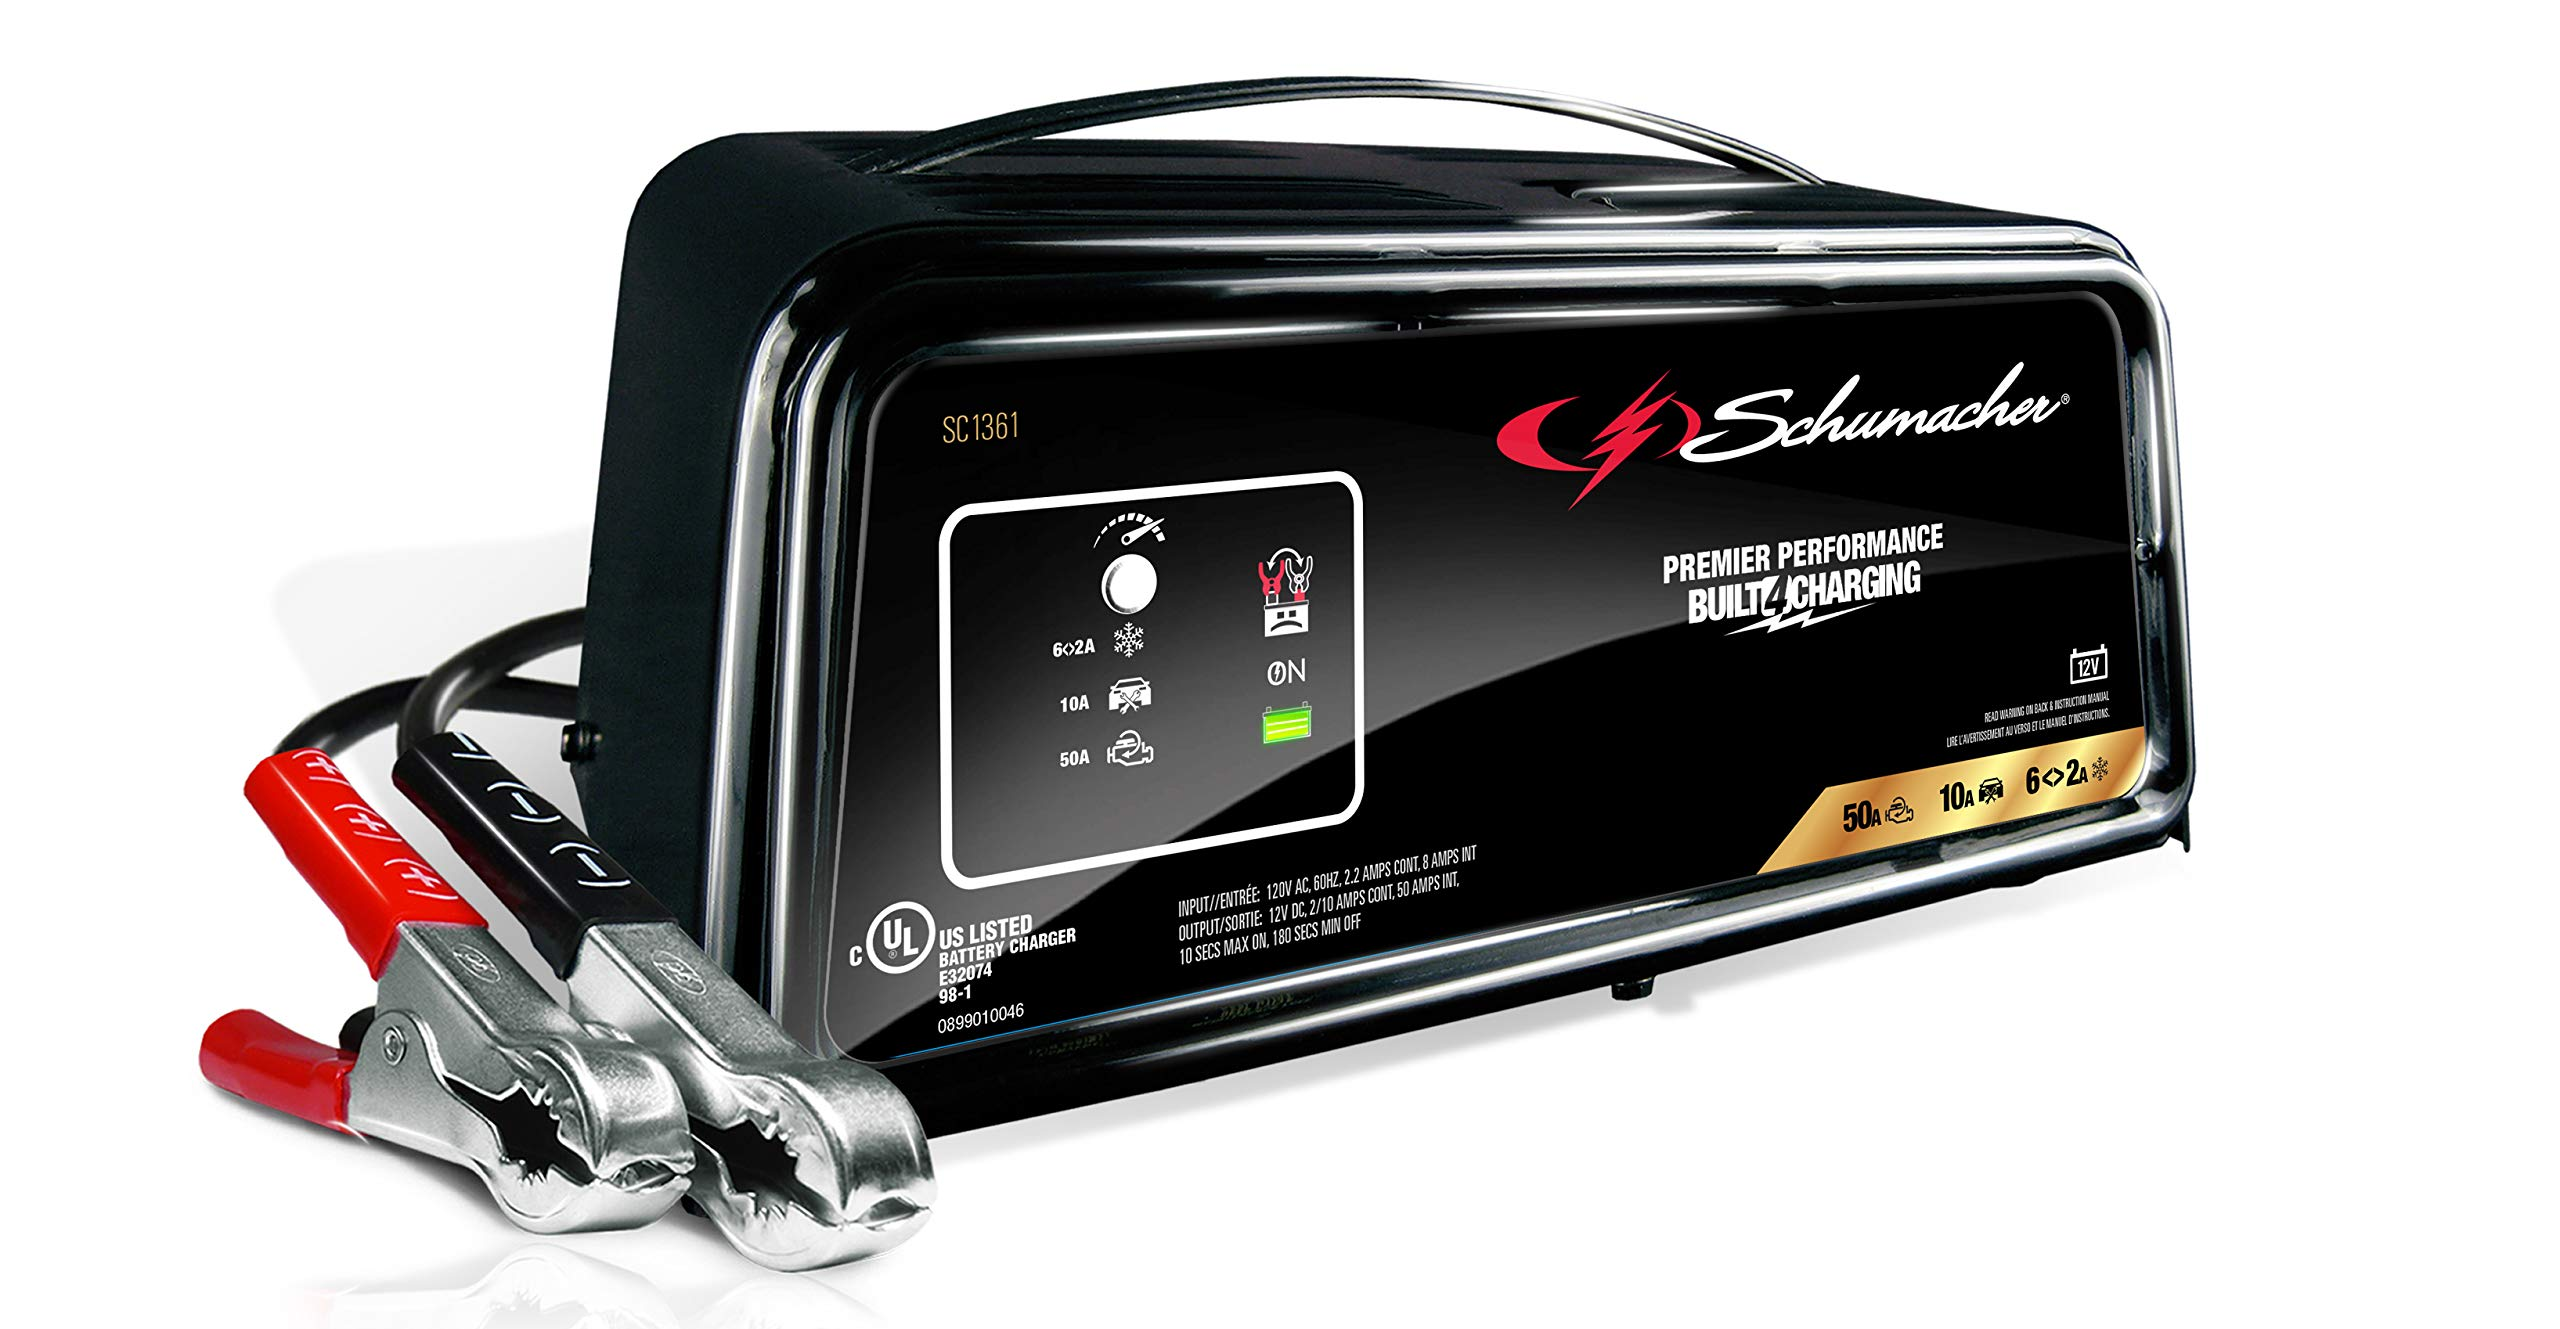 Schumacher SC1361 12V Fully Automatic Battery Charger and 10/50A Engine Starter by Schumacher (Image #1)